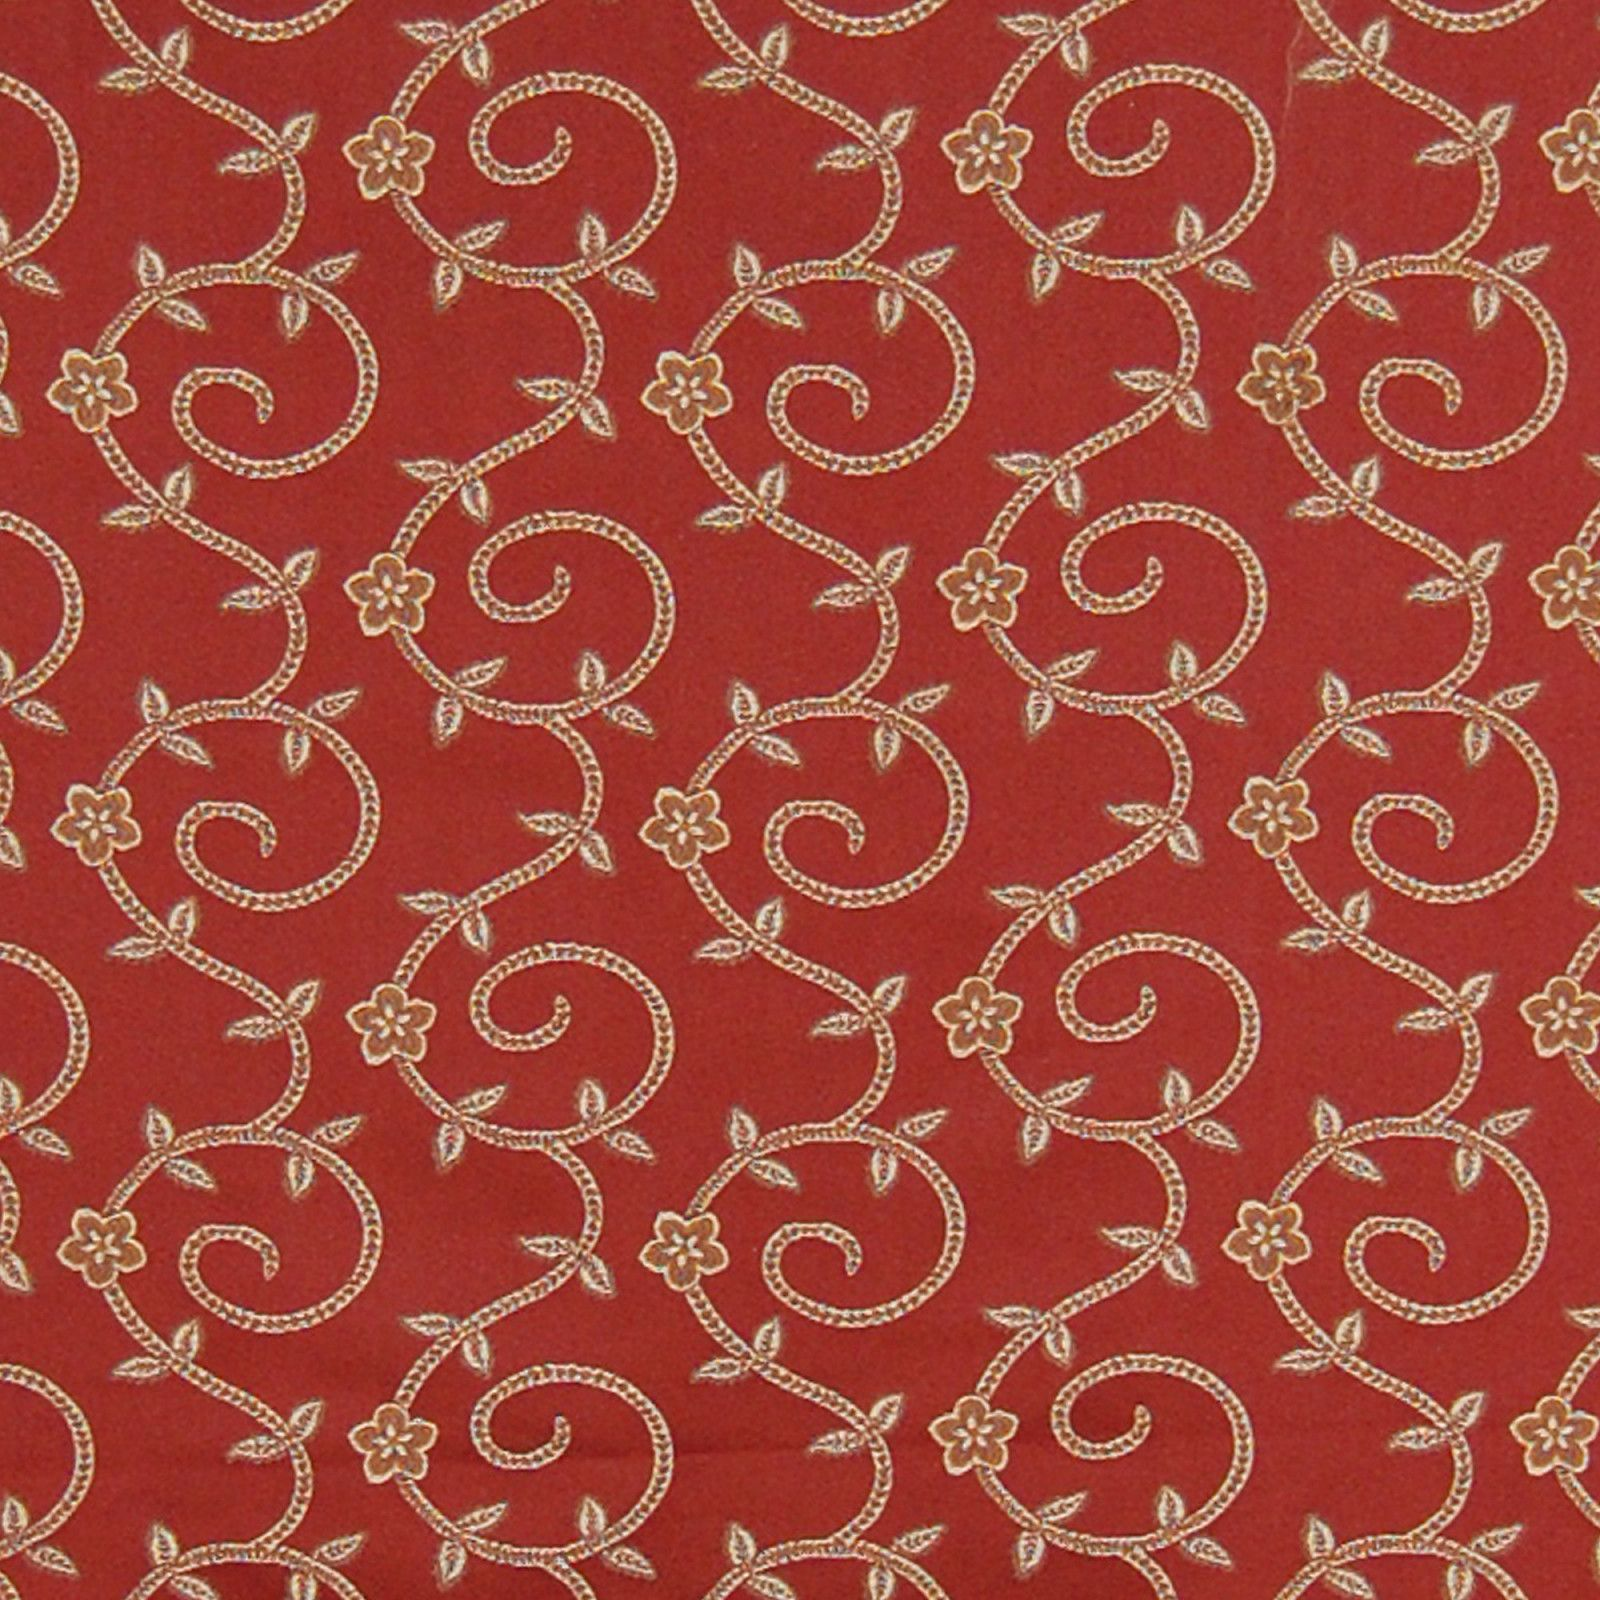 A8137 Burgundy Fabric Sophisticated Art